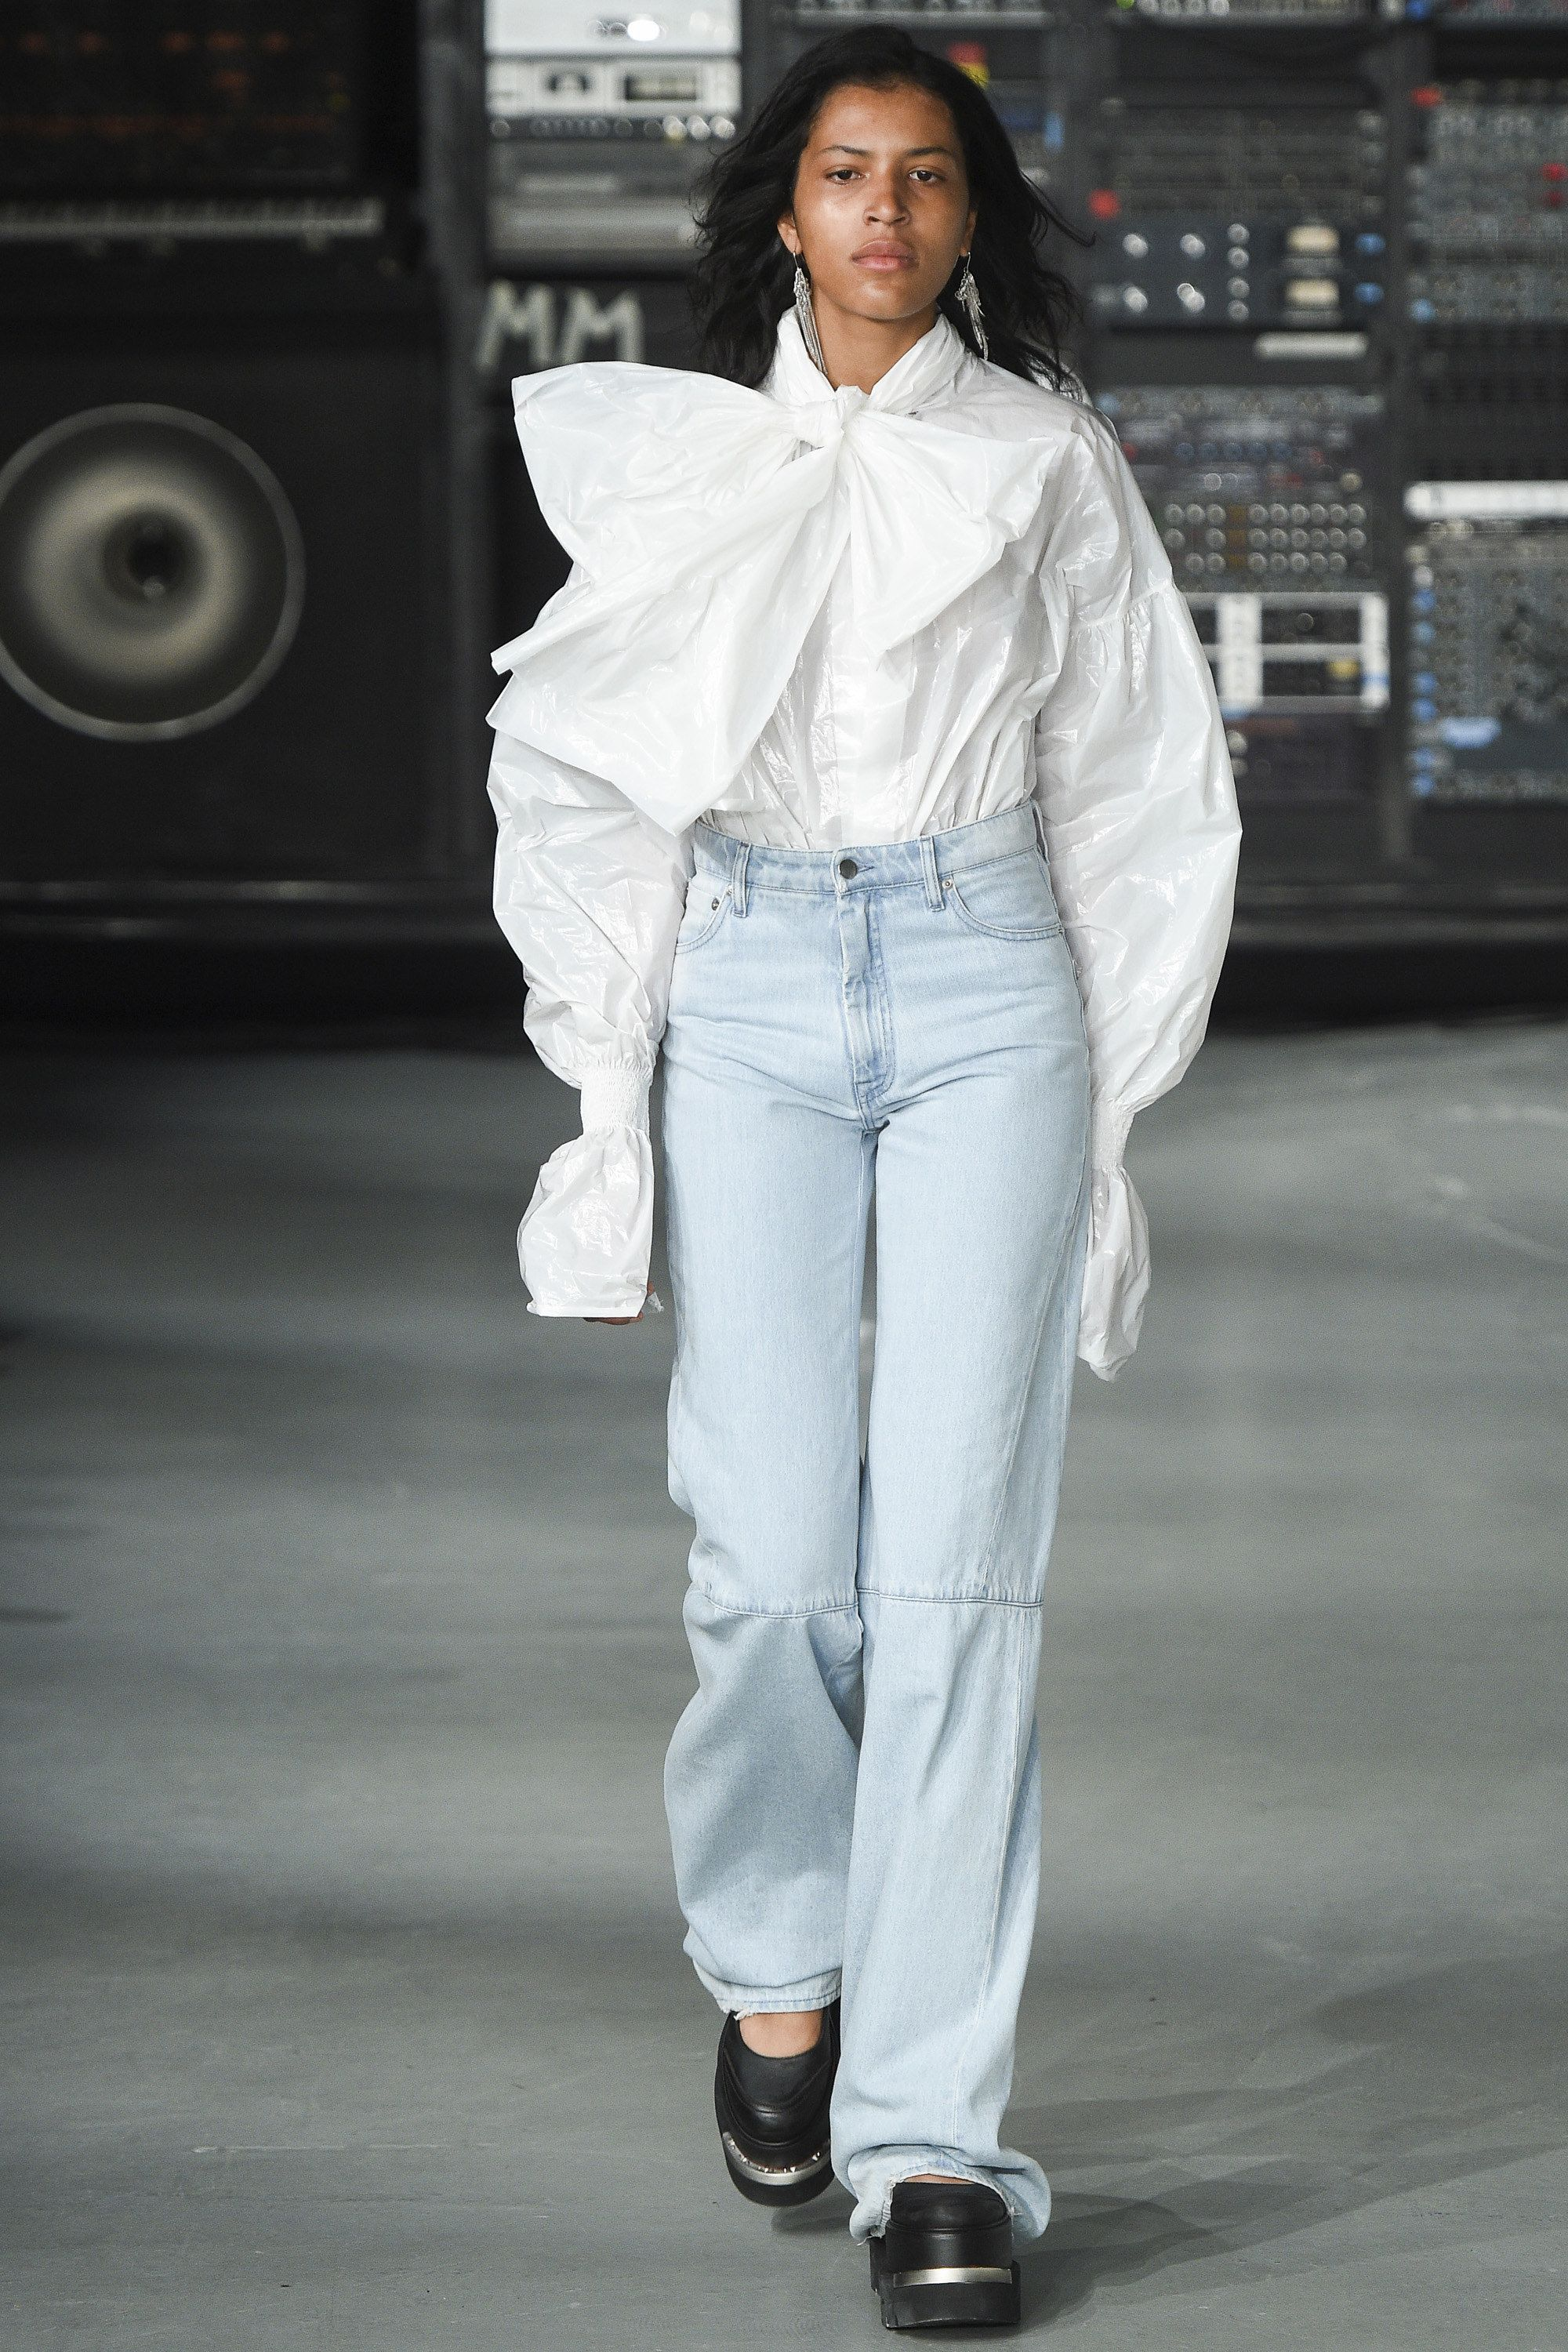 MM6 Maison Margiela Spring 2016 Ready-to-Wear Collection Photos - Vogue #cartonmagazine